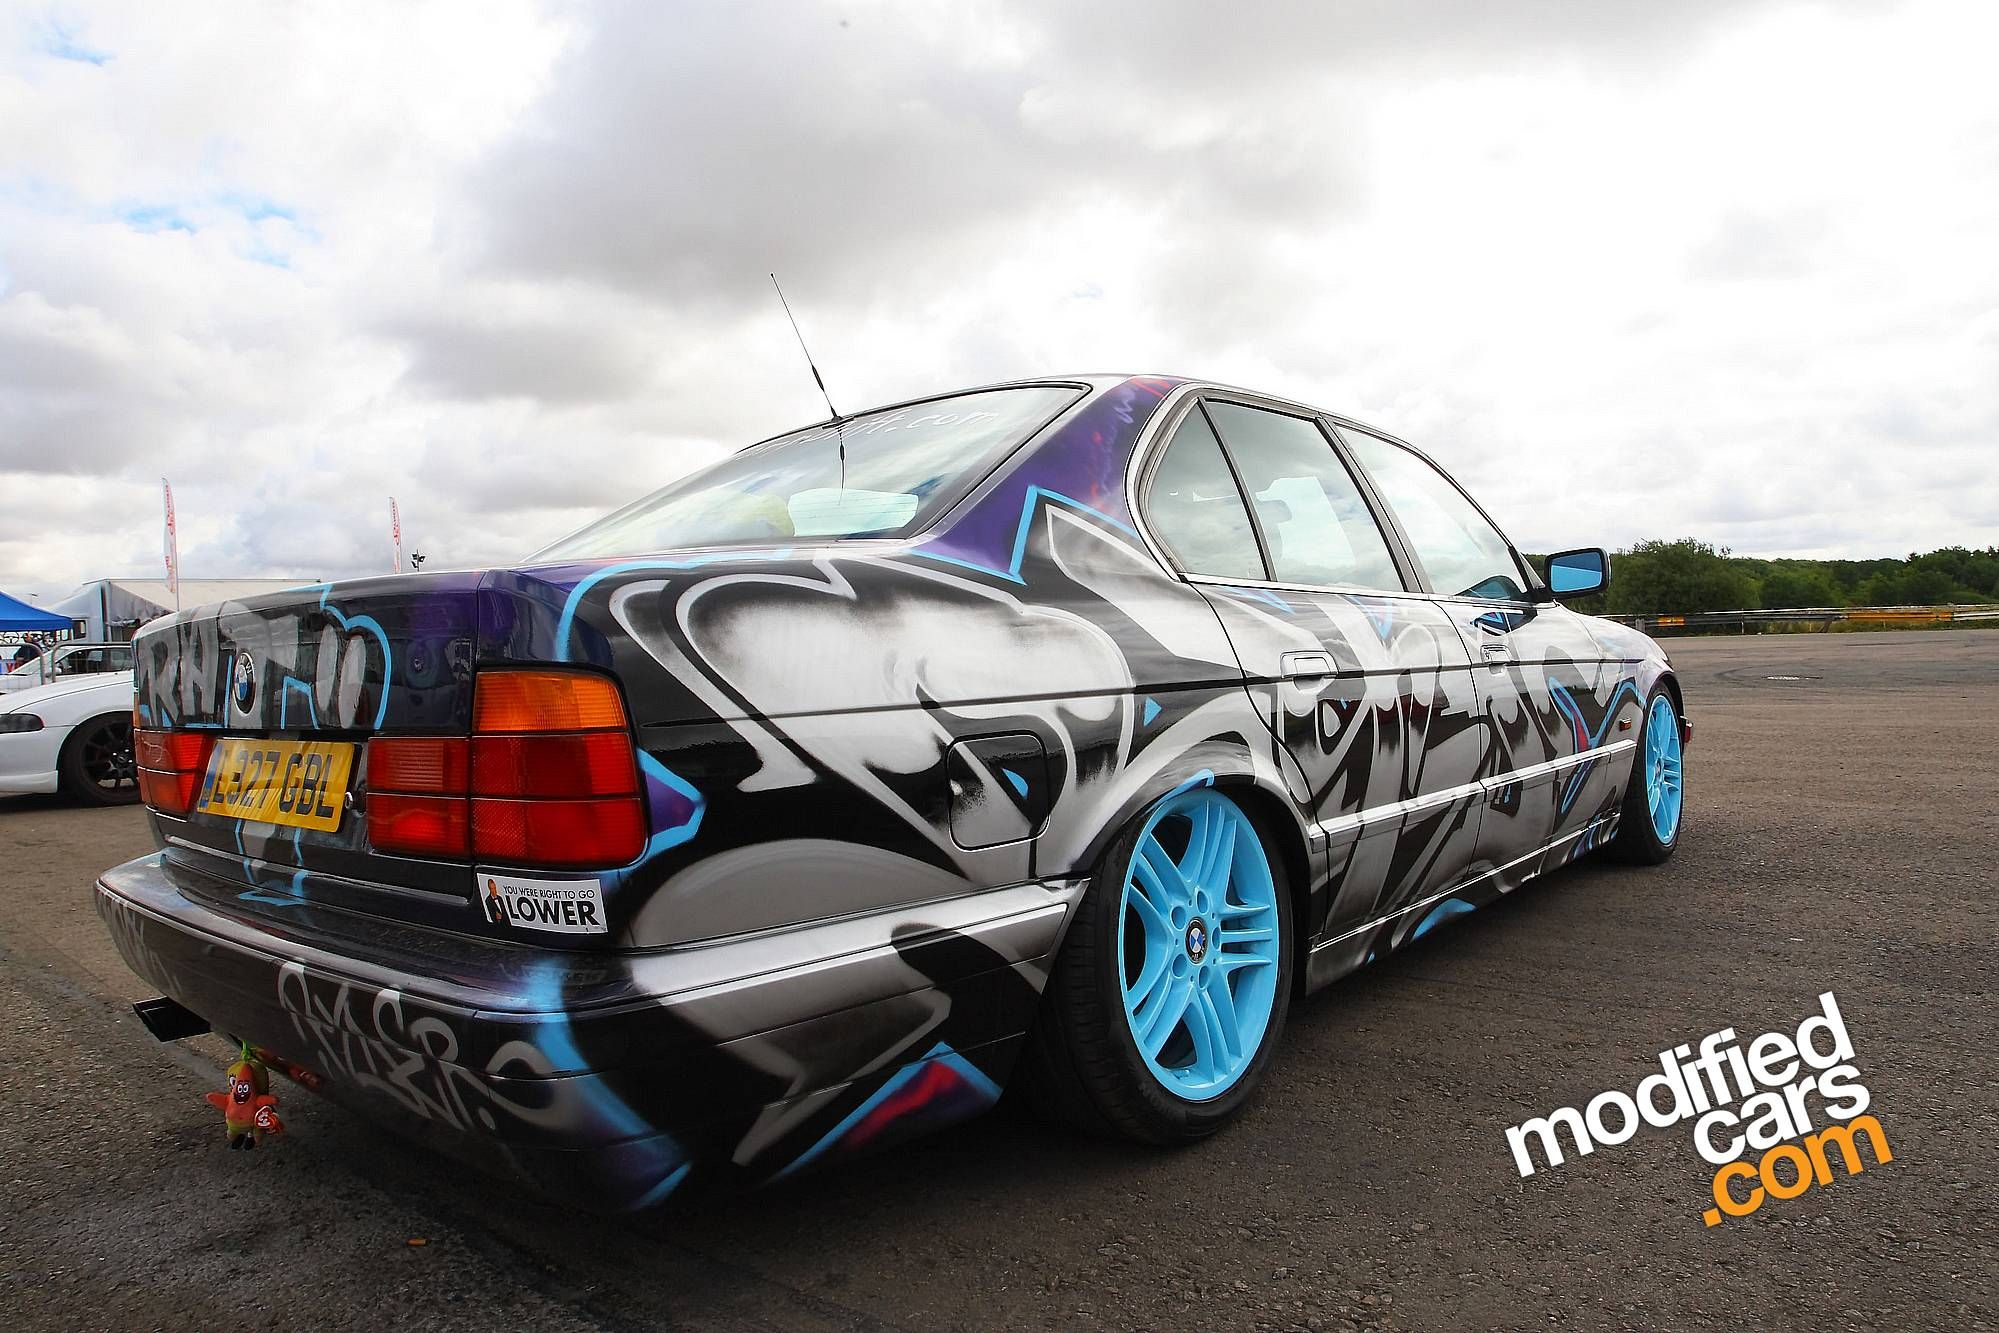 Cool paint jobs on trucks bmw with custom paint job ultimate vip affiliates how to paint your car do it yourself auto body and paint training site solutioingenieria Gallery